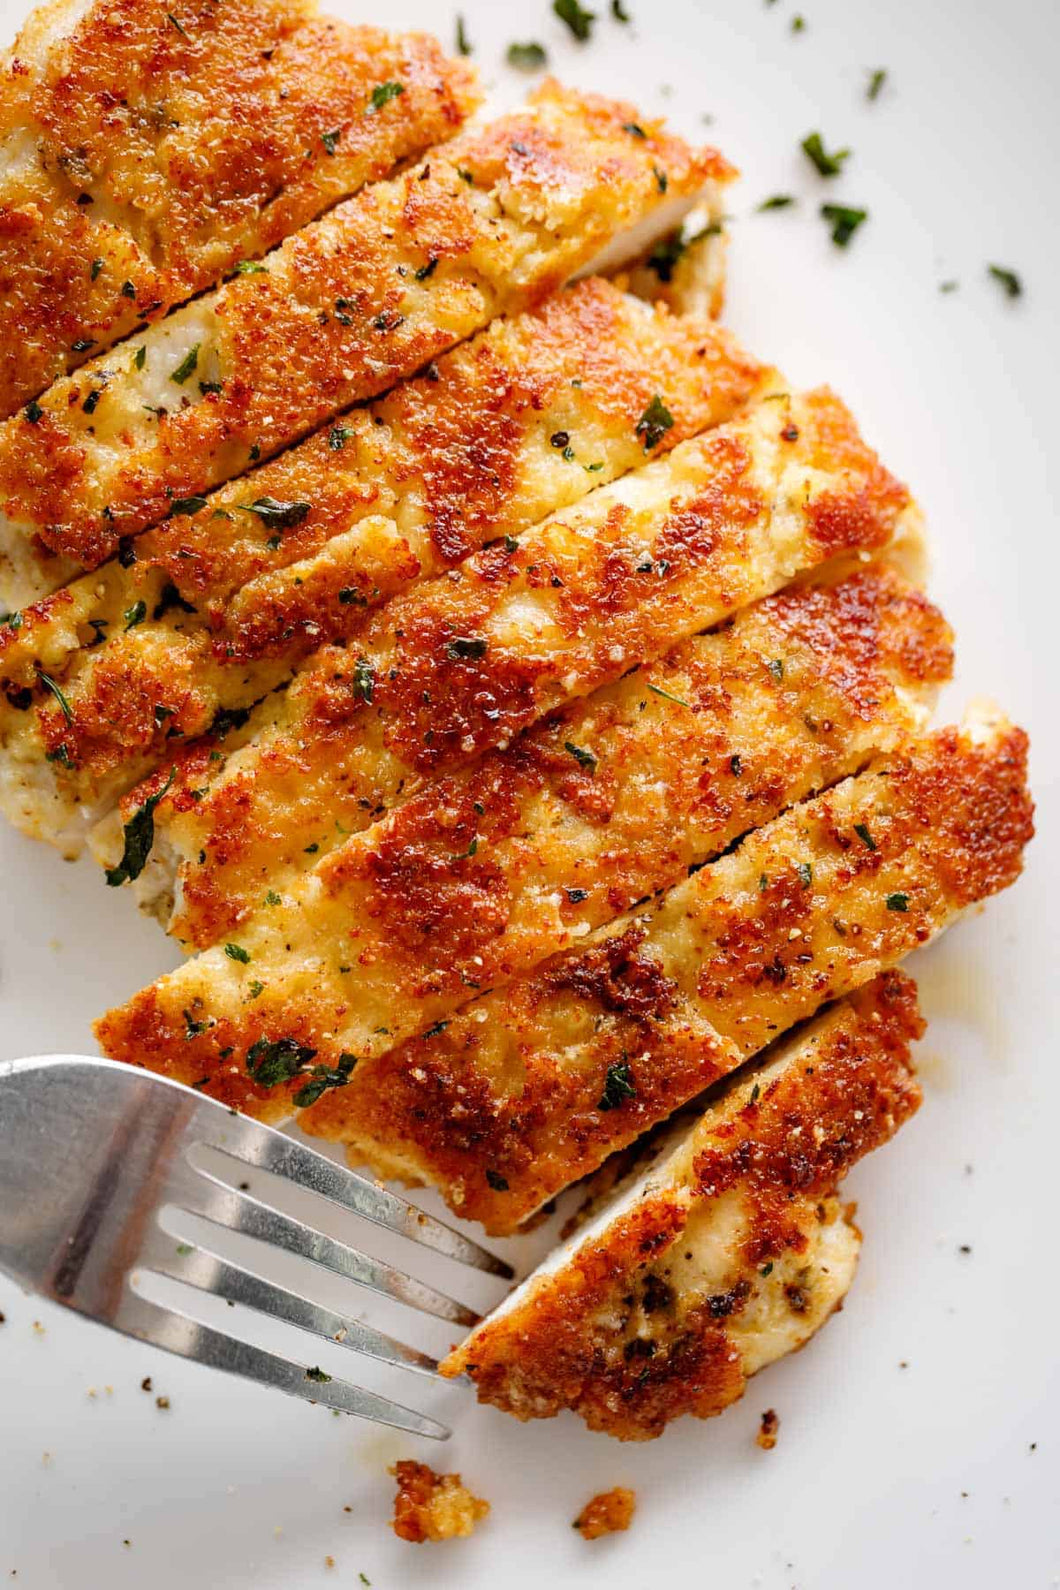 2 PACK OF KETO PARMESAN CRUSTED CHICKEN BREAST